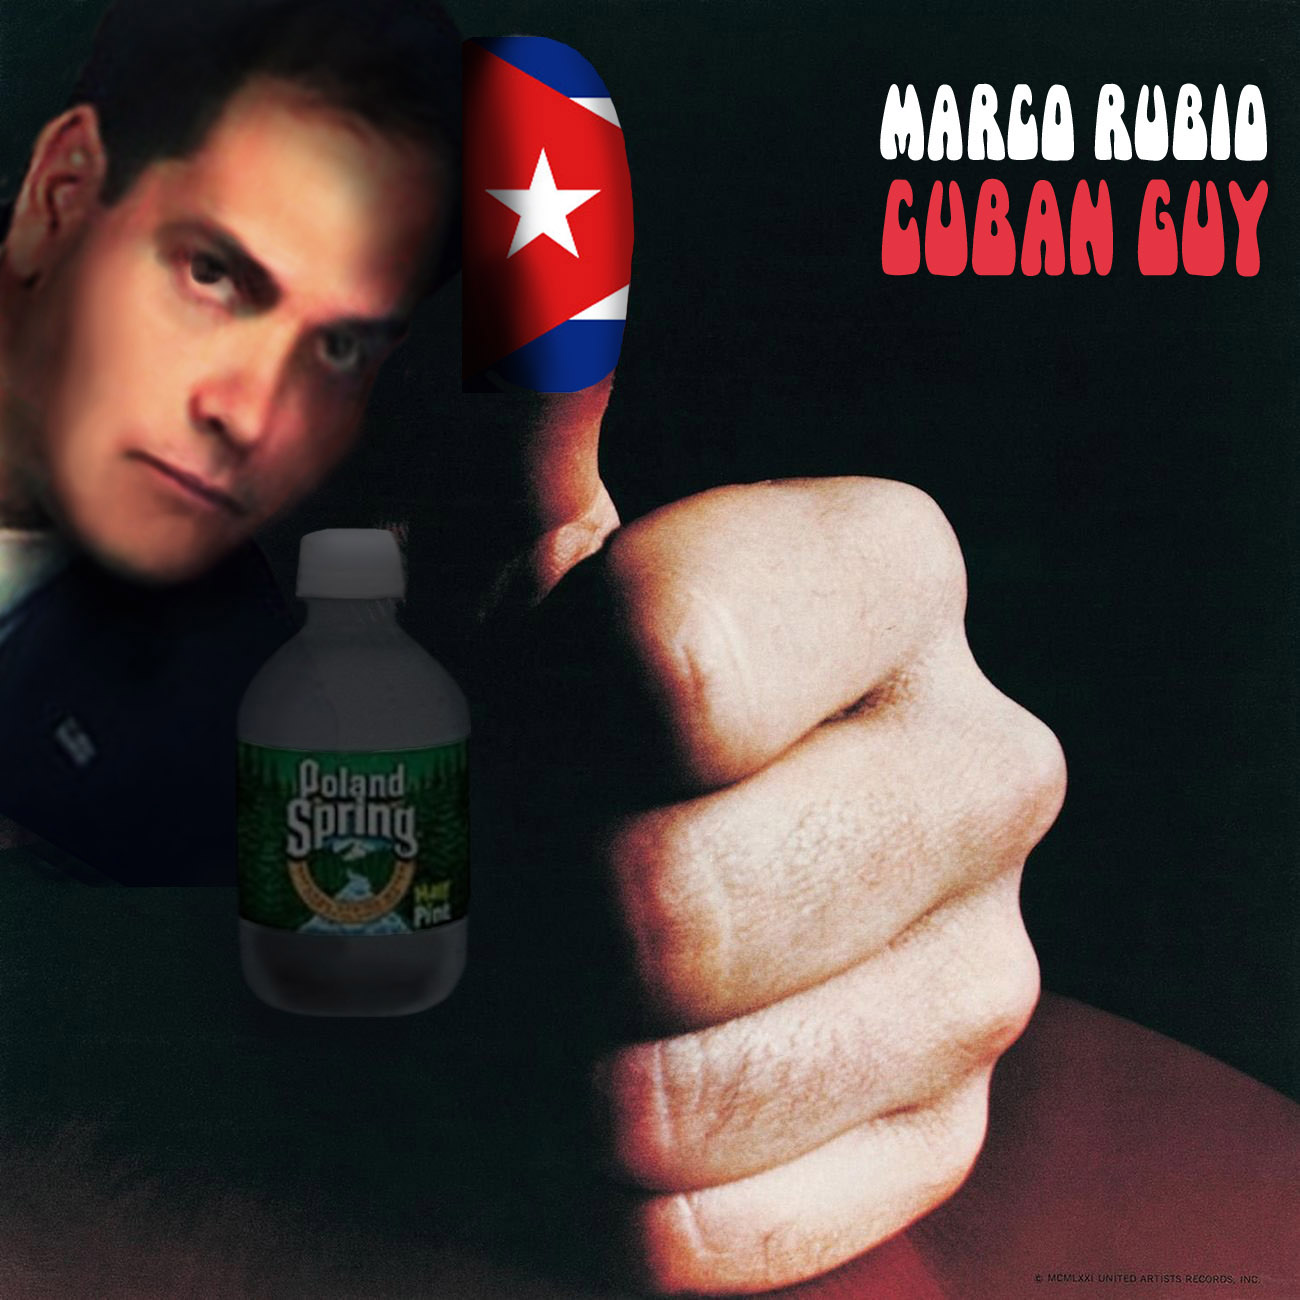 Album cover parody of American Pie by DON MCLEAN